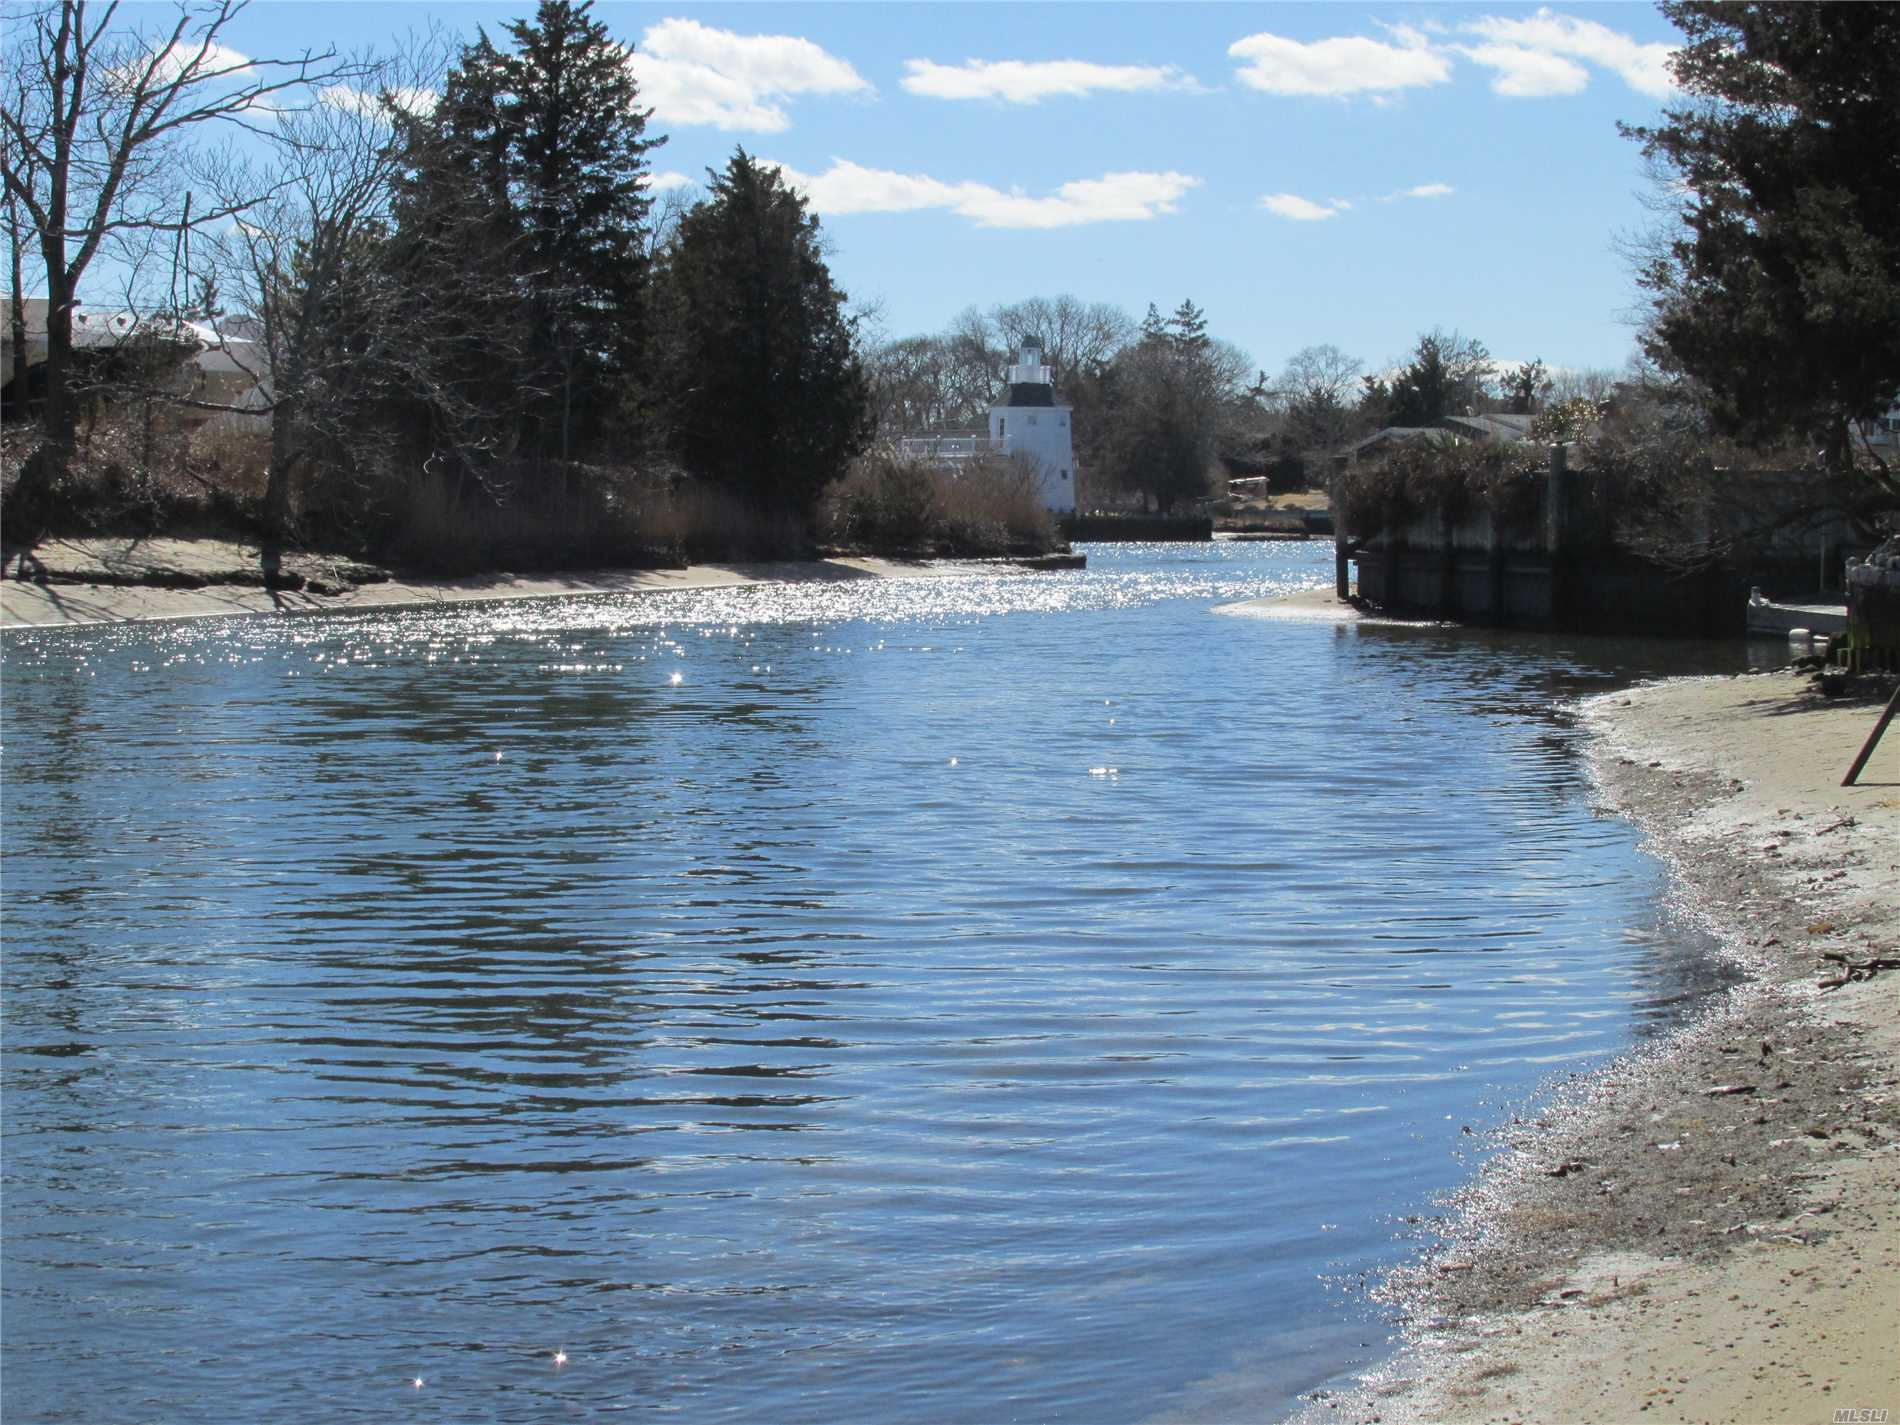 PRICE REDUCTION!! Sheltered Deep Waterfront On James Creek - .39 Acre Lot - 80' Frontage - Direct Access To Peconic Bay - Bay Beaches & Marina Nearby- Attached Survey From 2007 Has Site Plan For House/Dock - No Representation Is Being Made To The Feasibility Of Those Plans - Buyer Should Do Their Own Due Diligence Re Permits - No contingencies except clear title - Please Do Not Walk Property Without Listing Broker